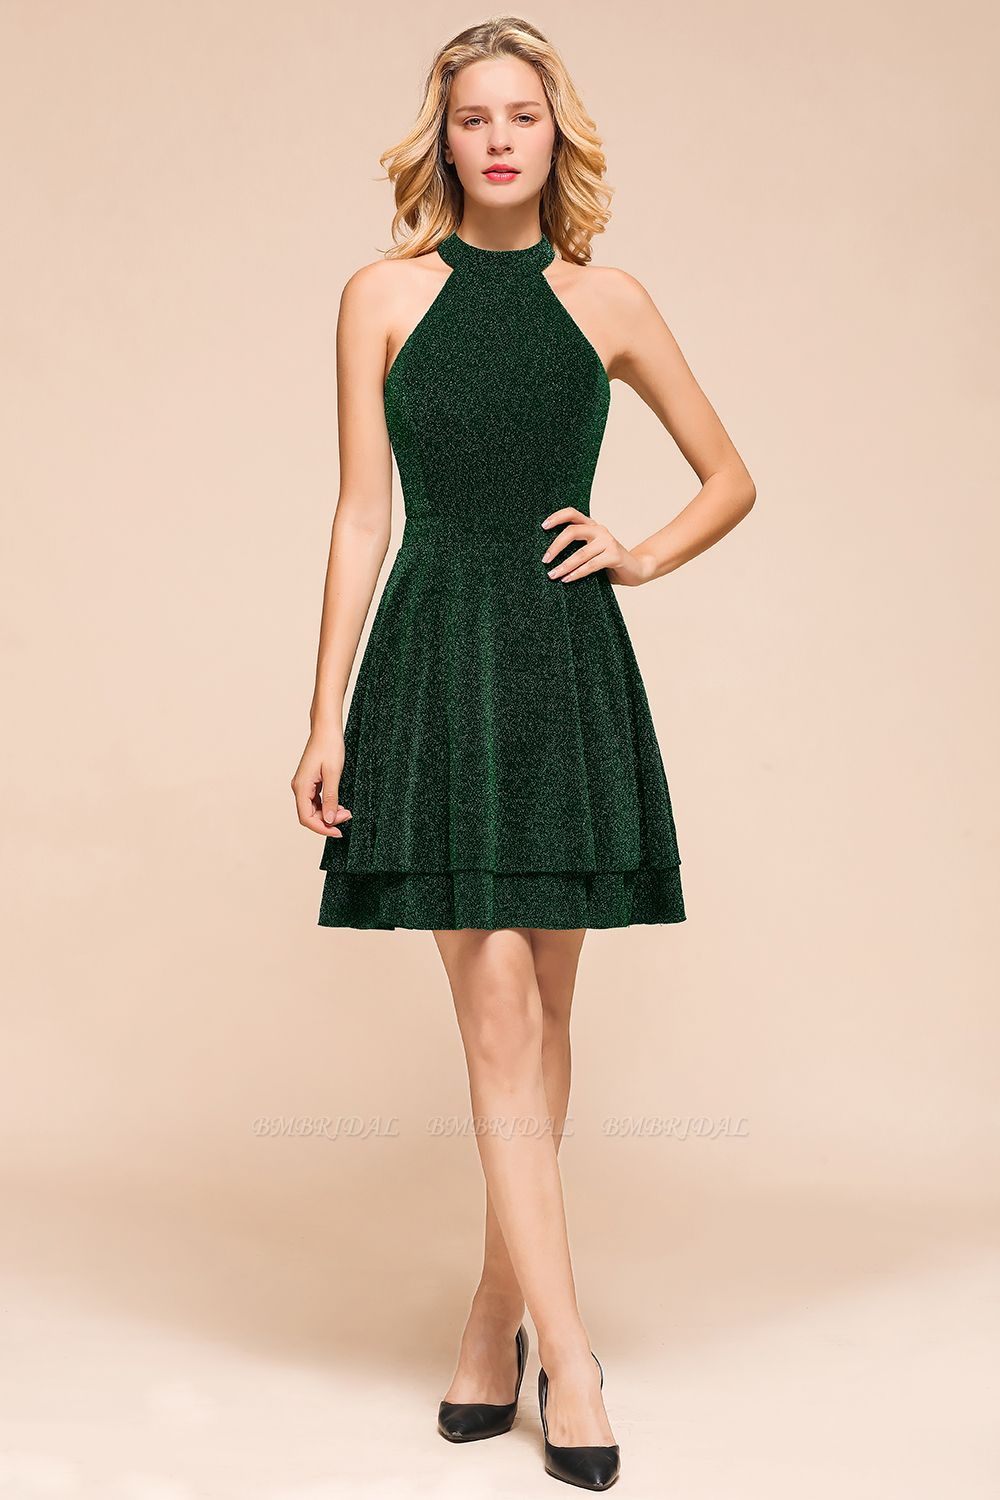 Green Shinning Halter Short Prom Dress Mini Party Gowns